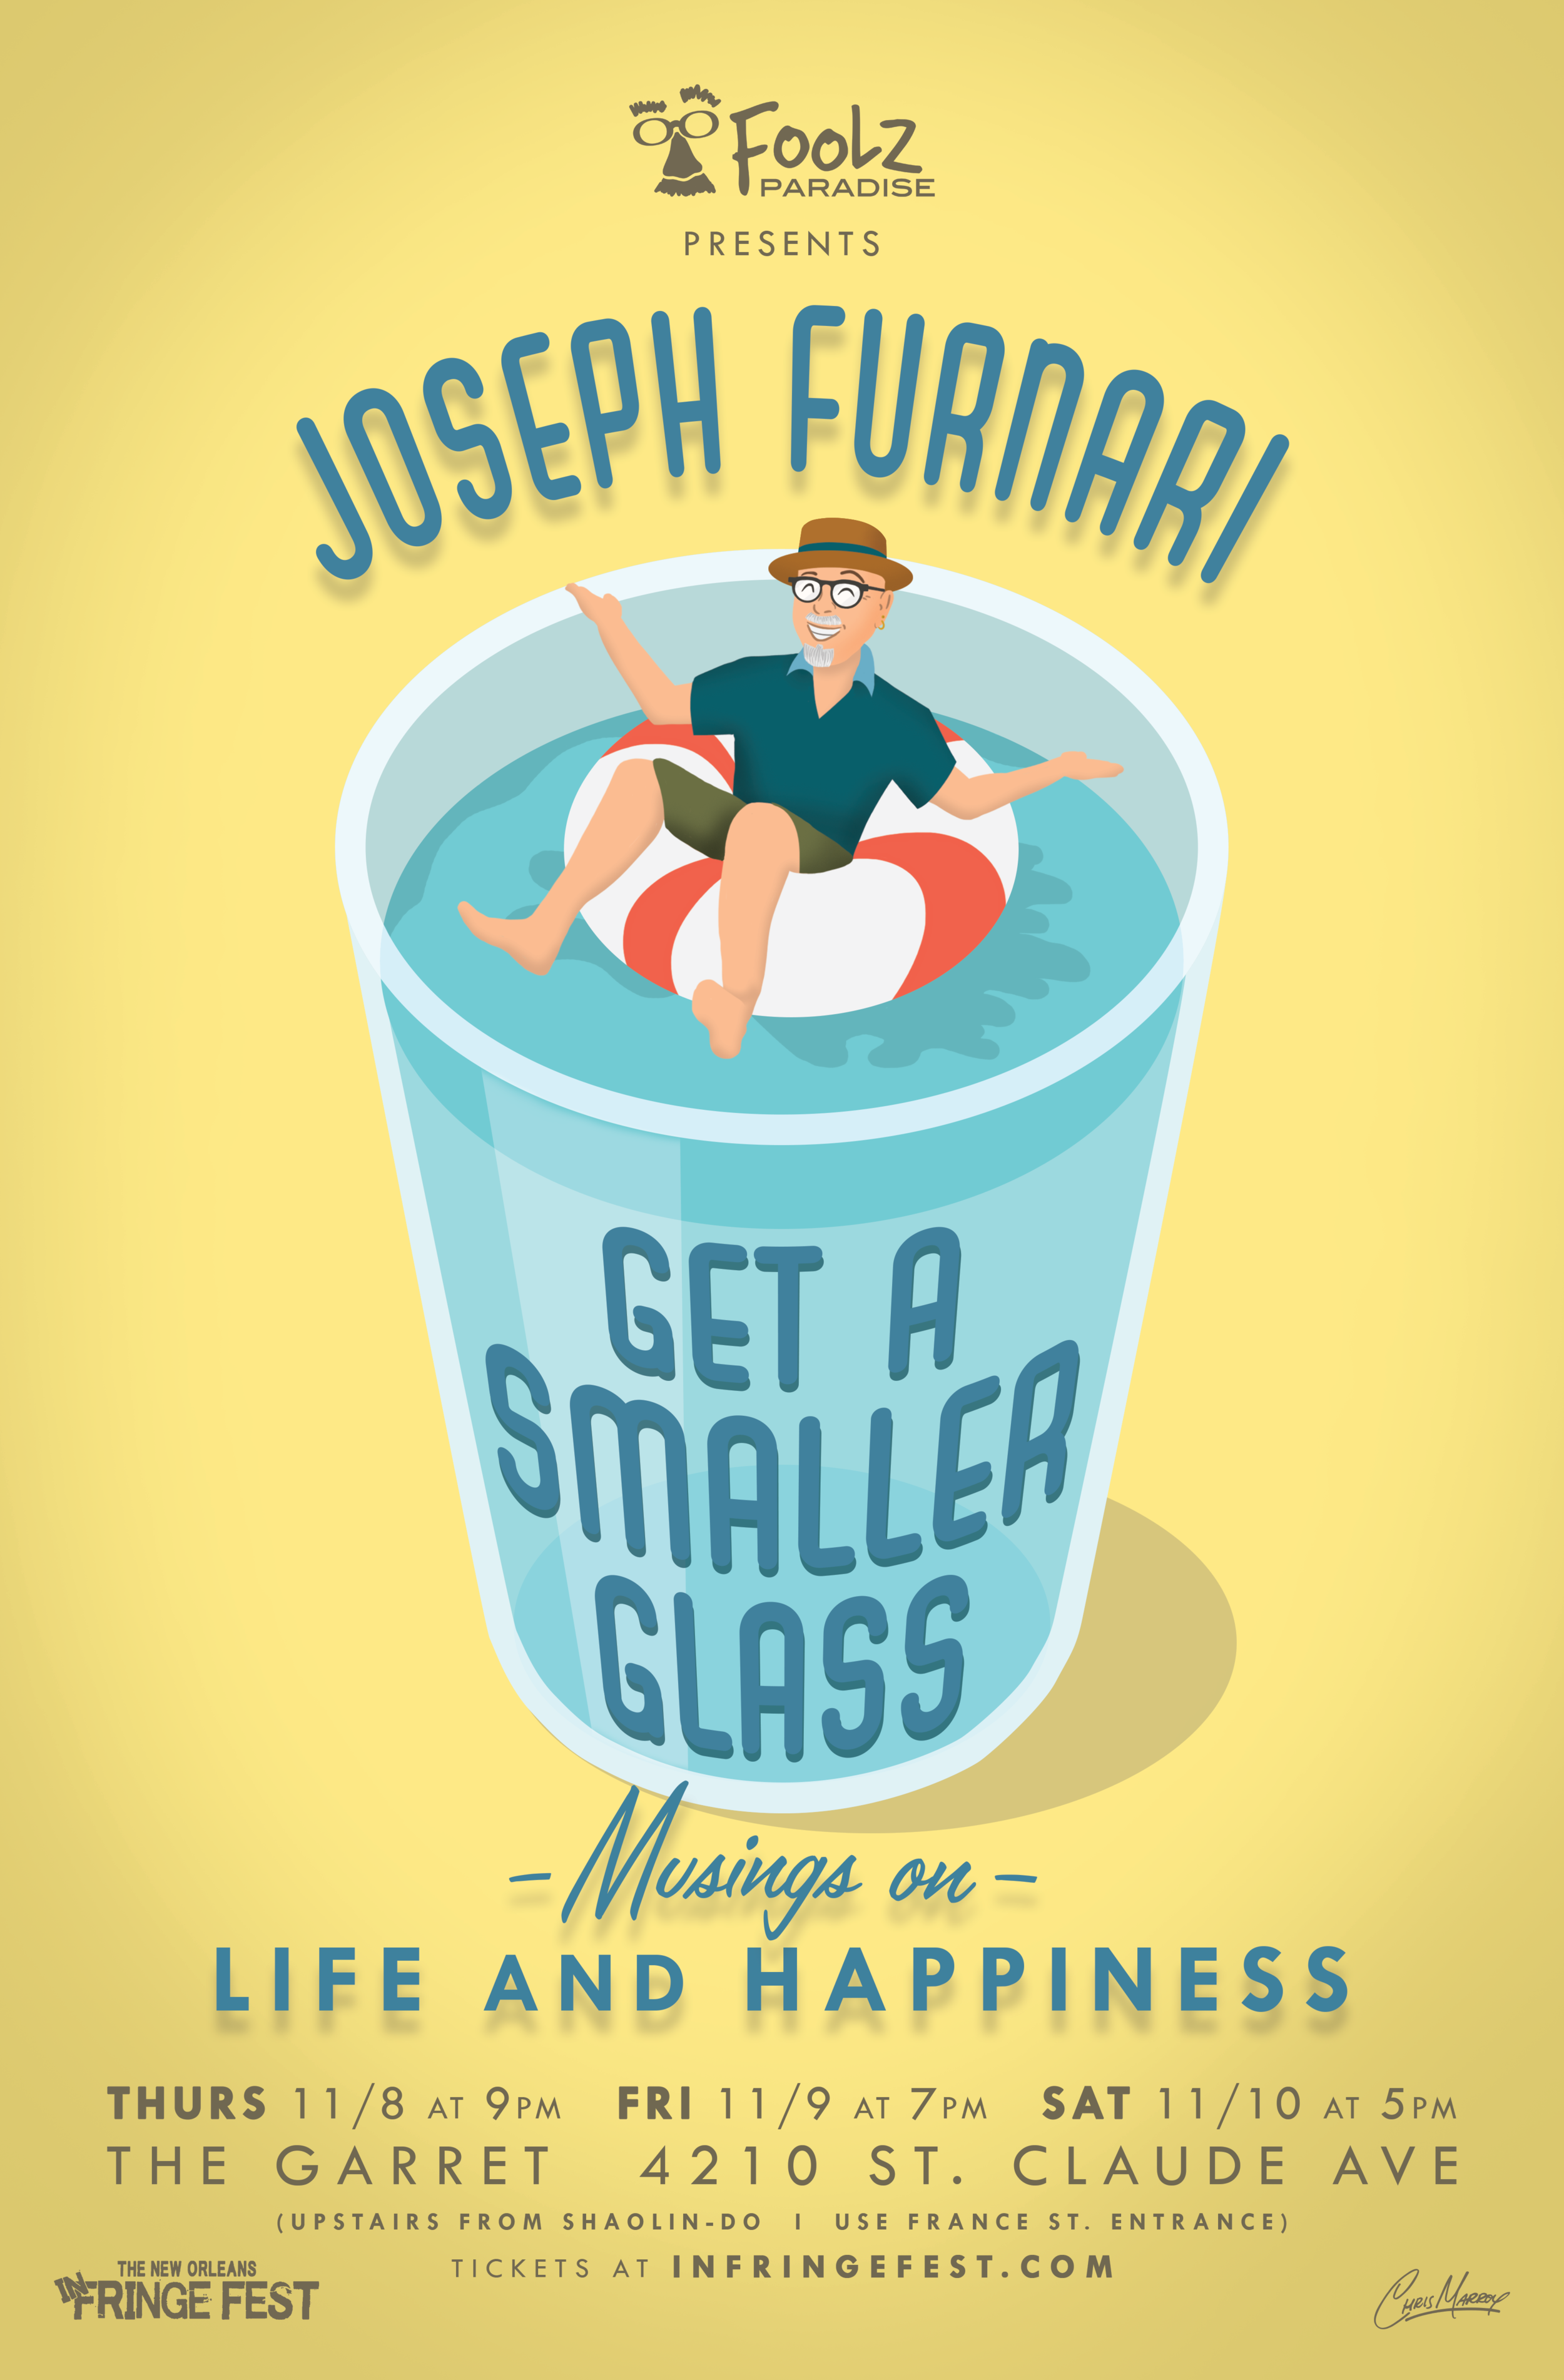 SMALLER GLASS POSTER 11x17.png